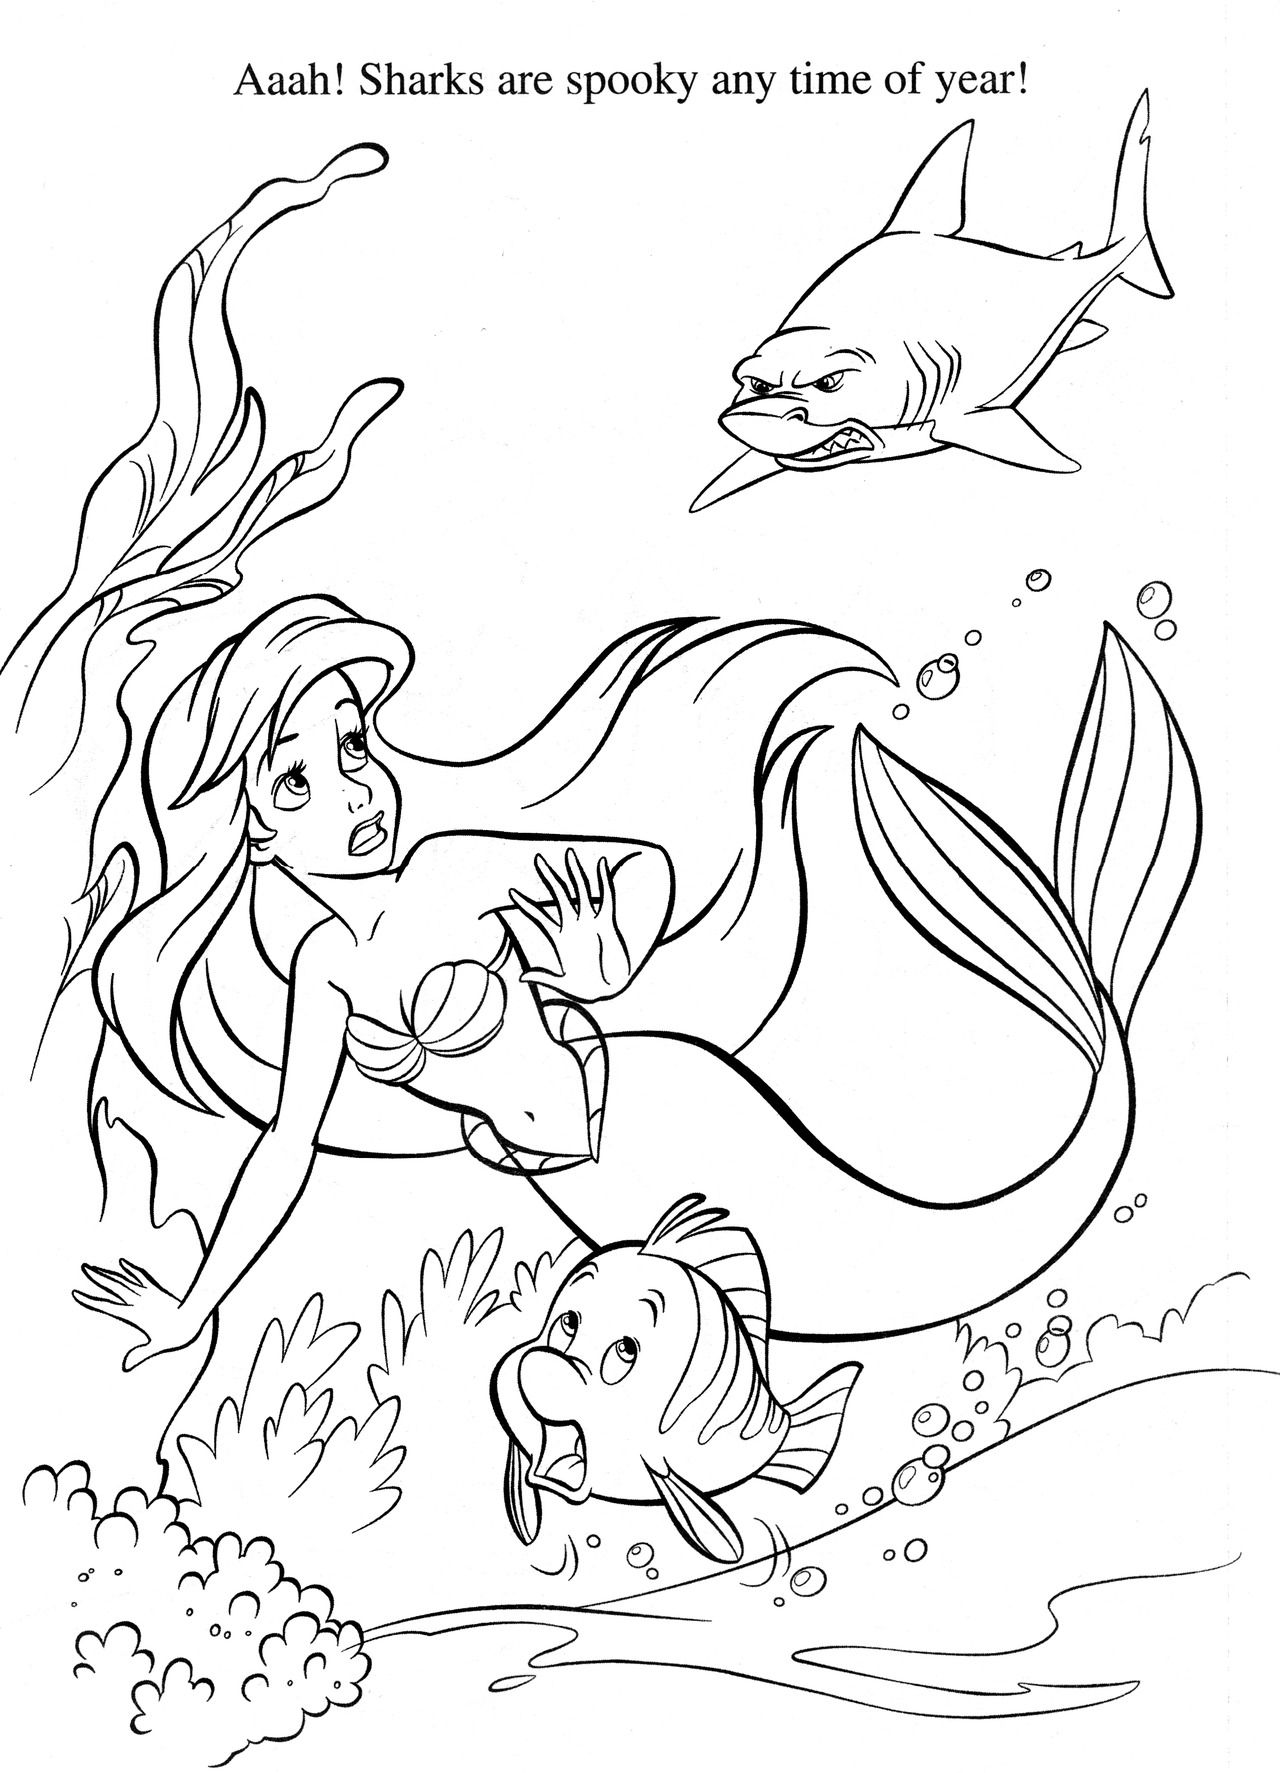 Coloring Pages Sports Countach For Doors Open Cars Coloring Pages Printables Disney Coloring Pages Ariel Coloring Pages Mermaid Coloring Pages